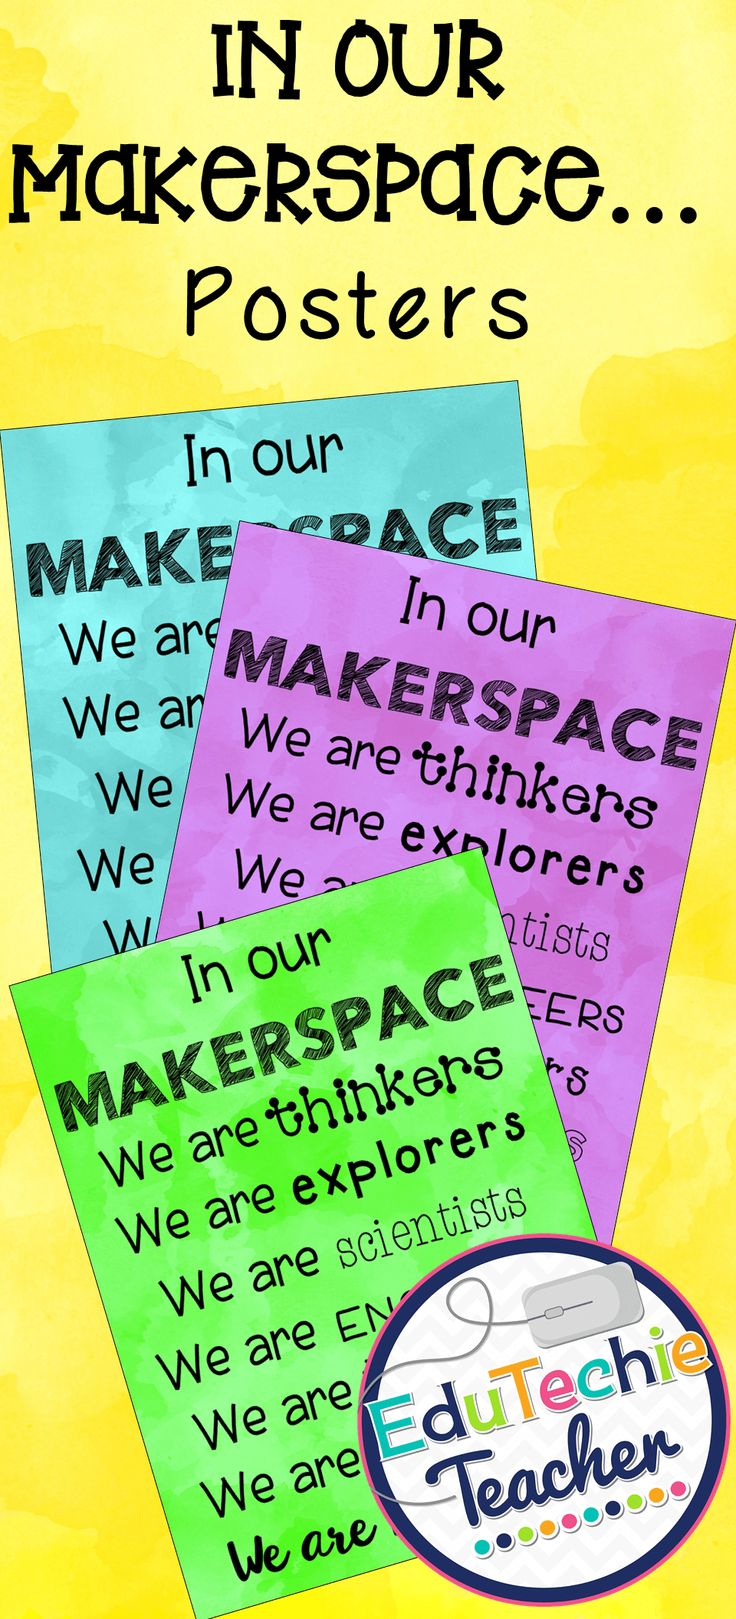 Colorful signs for the explorers and creators in your Makerspace!  #makerspace #STEM